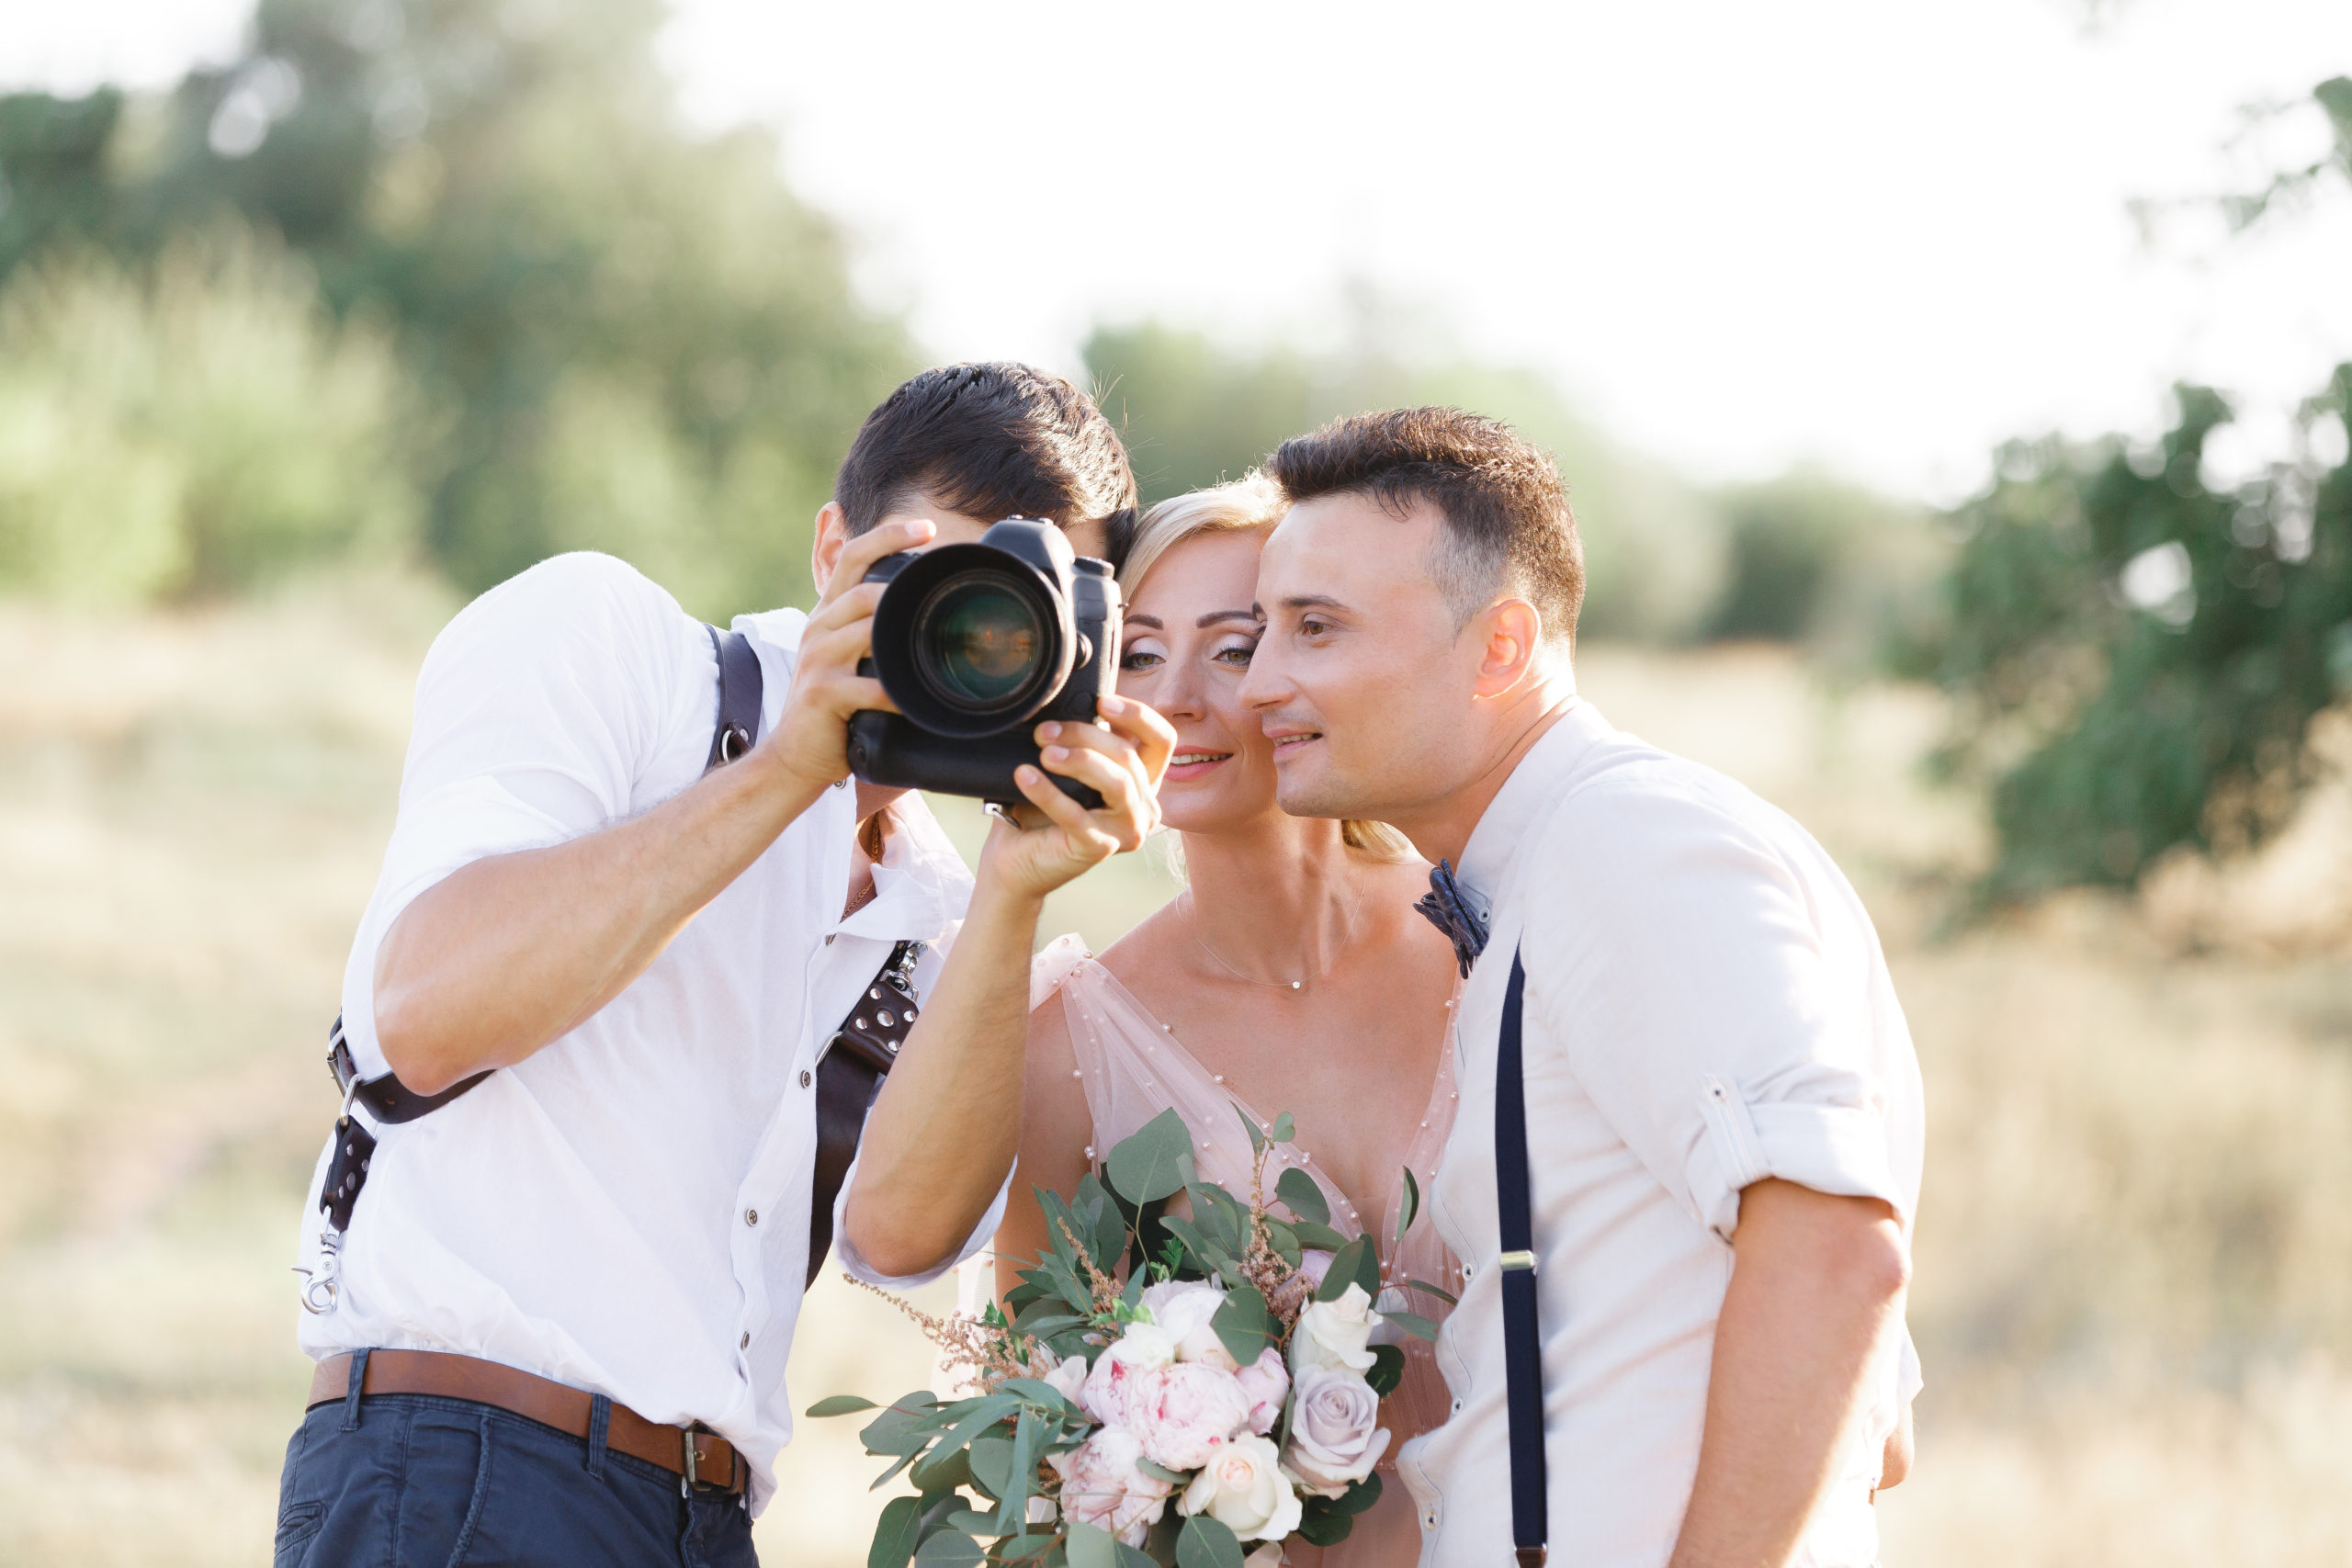 wedding photographer takes pictures of bride and groom in nature. photographer shows just taken photos to wedding couple